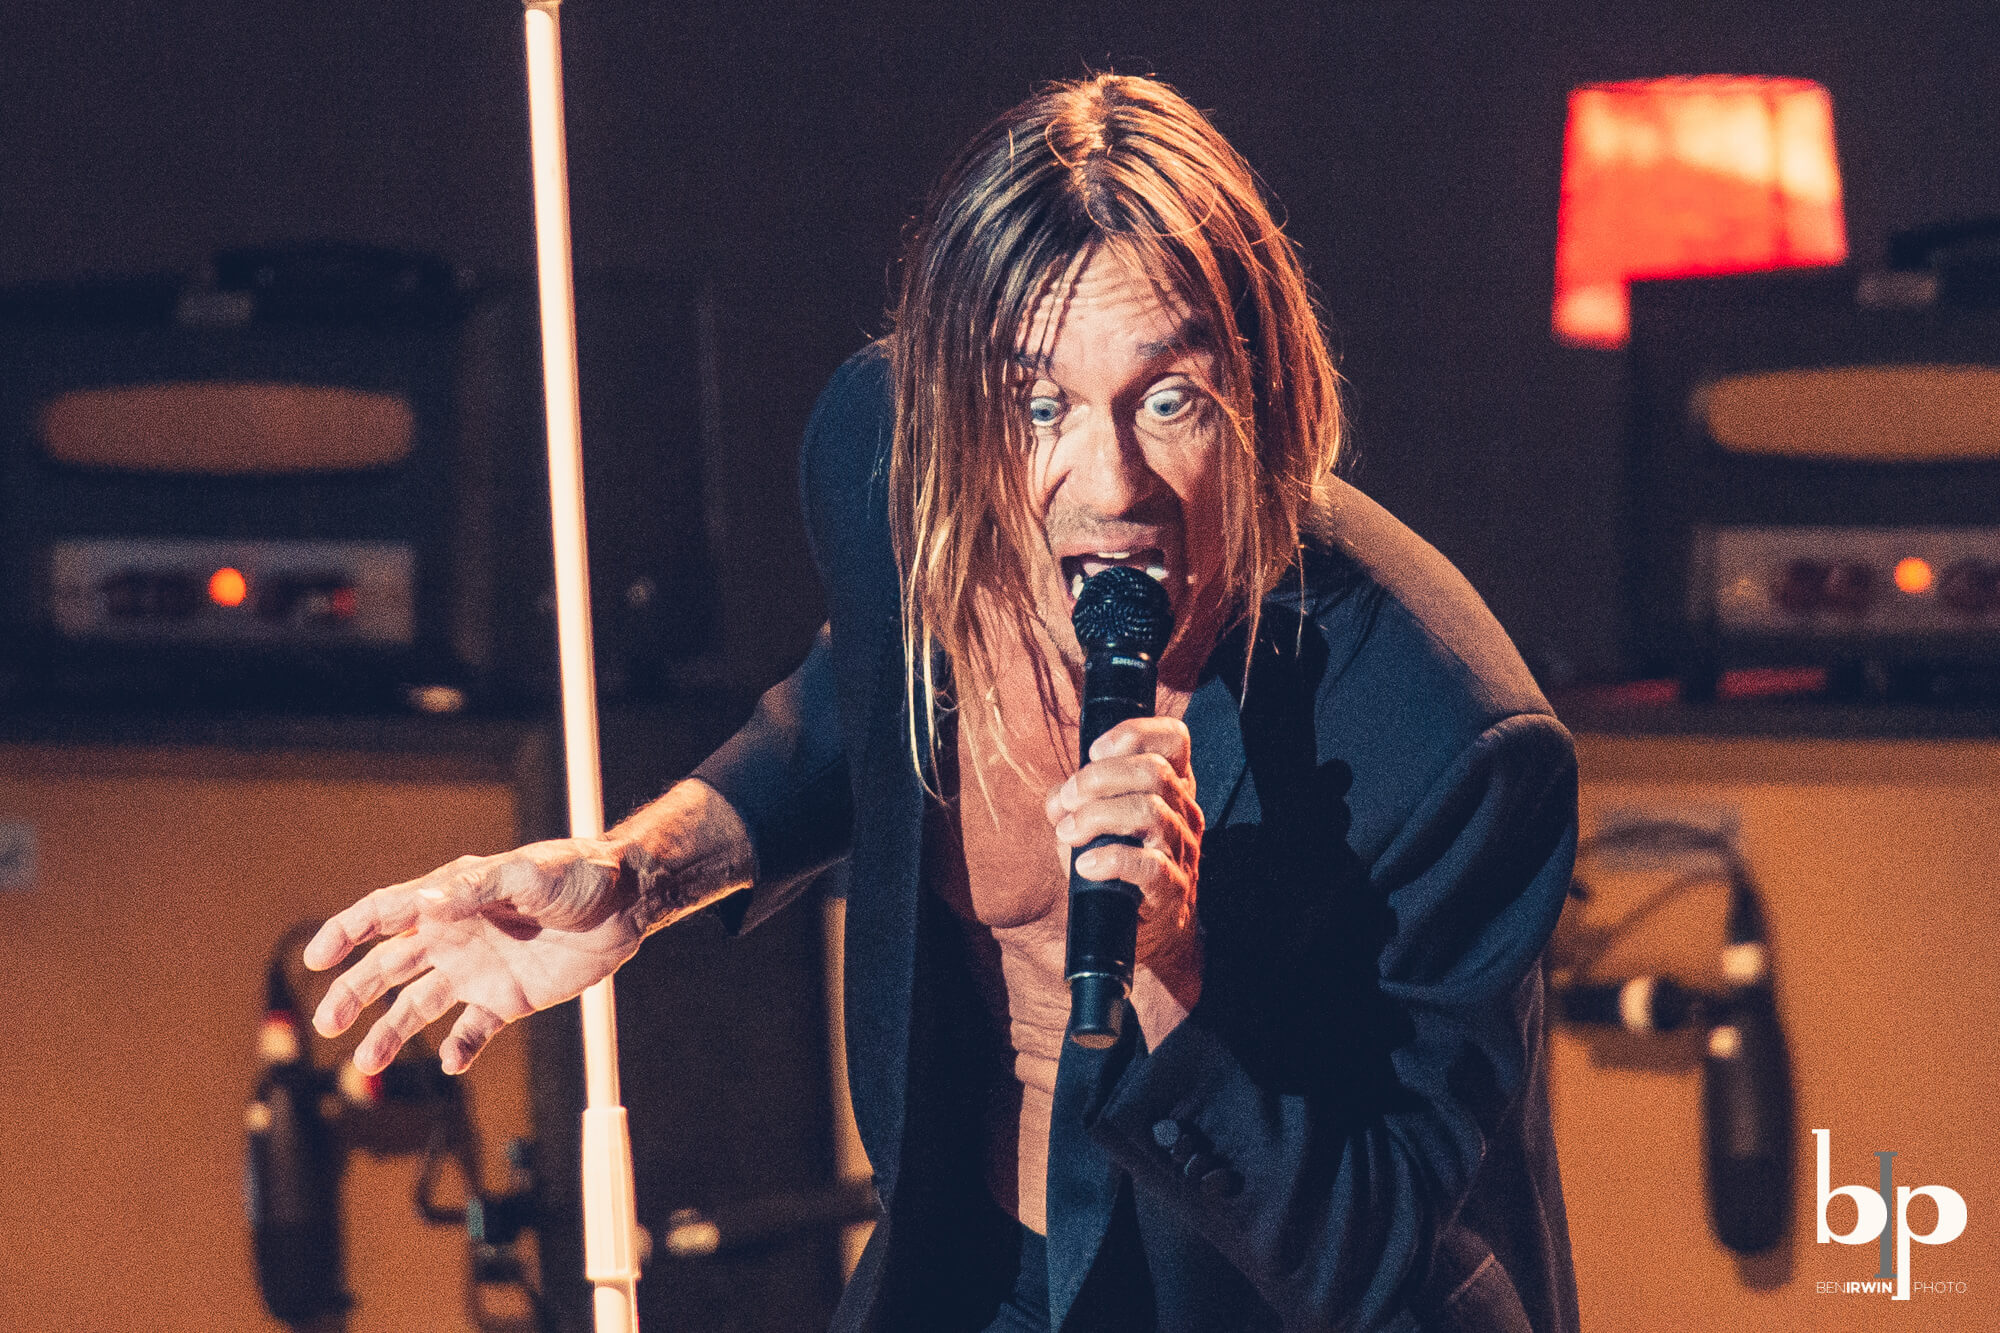 Iggy Pop - Josh Homme - bill callahan - Greek LA - 4-28-16_BI5165